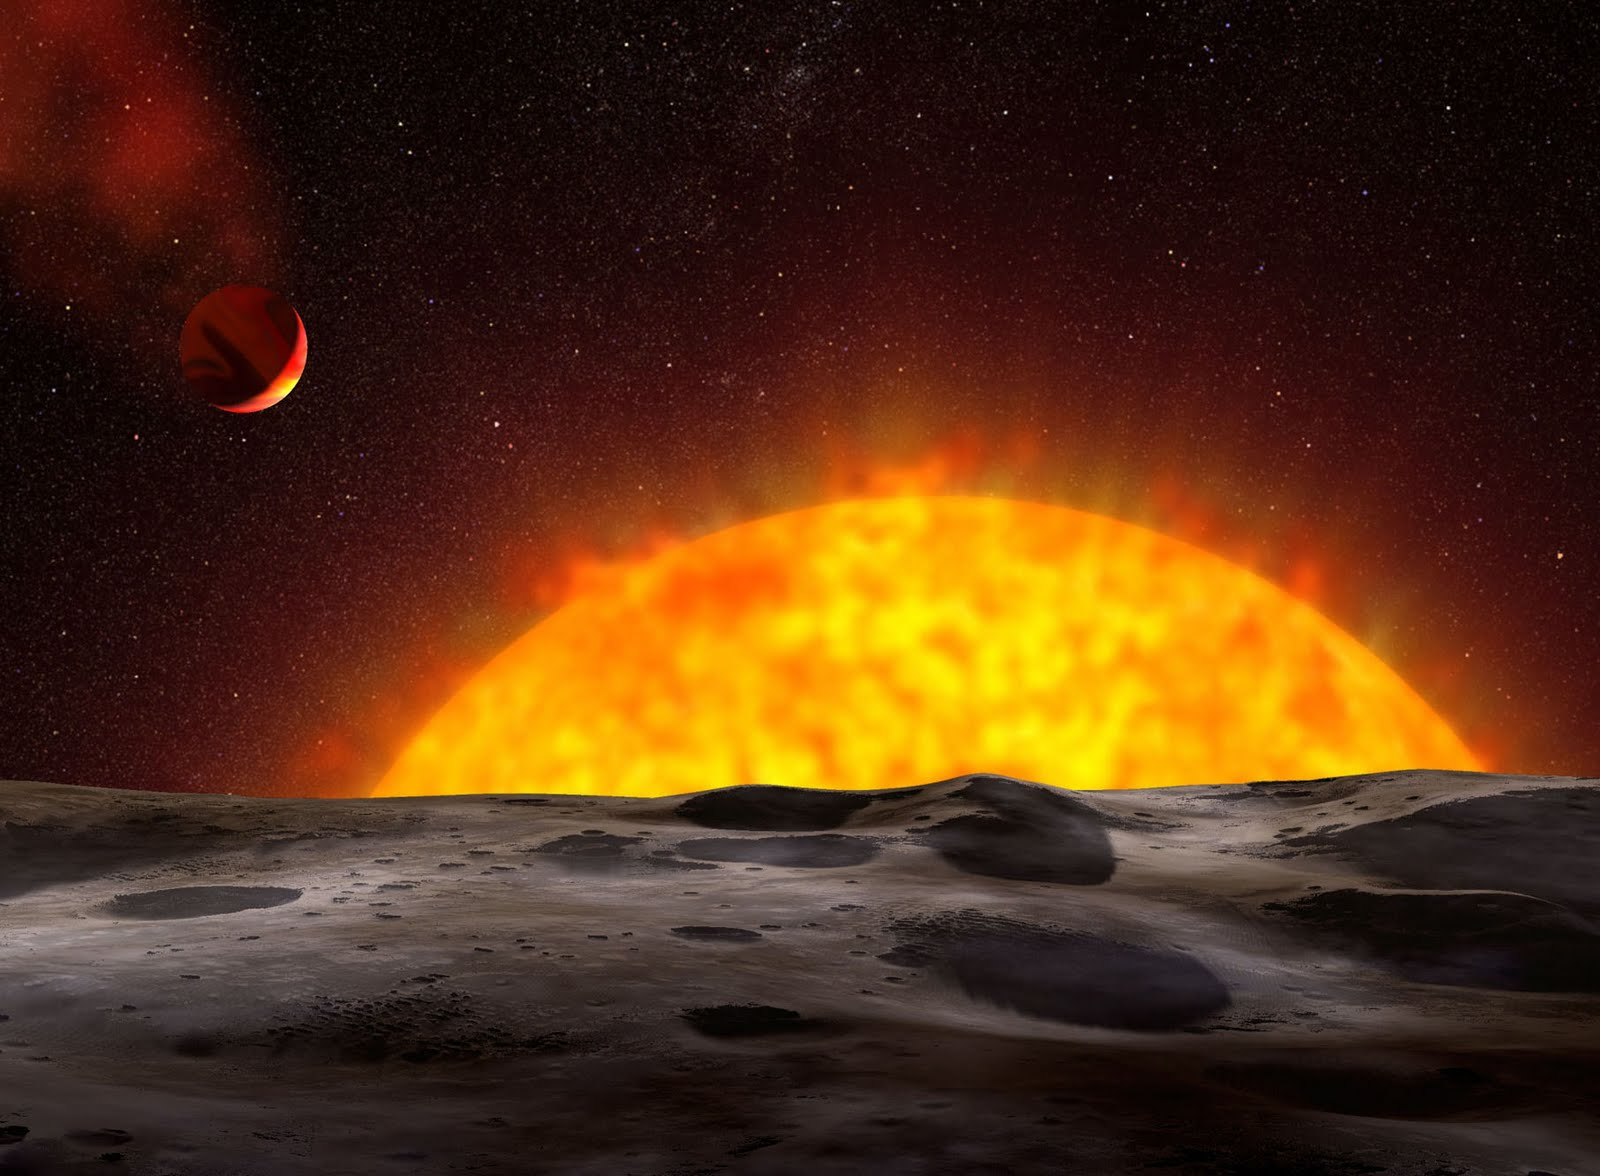 NASA-Finds-Super-Hot-Planet-with-Unique-Comet-Like-Tail